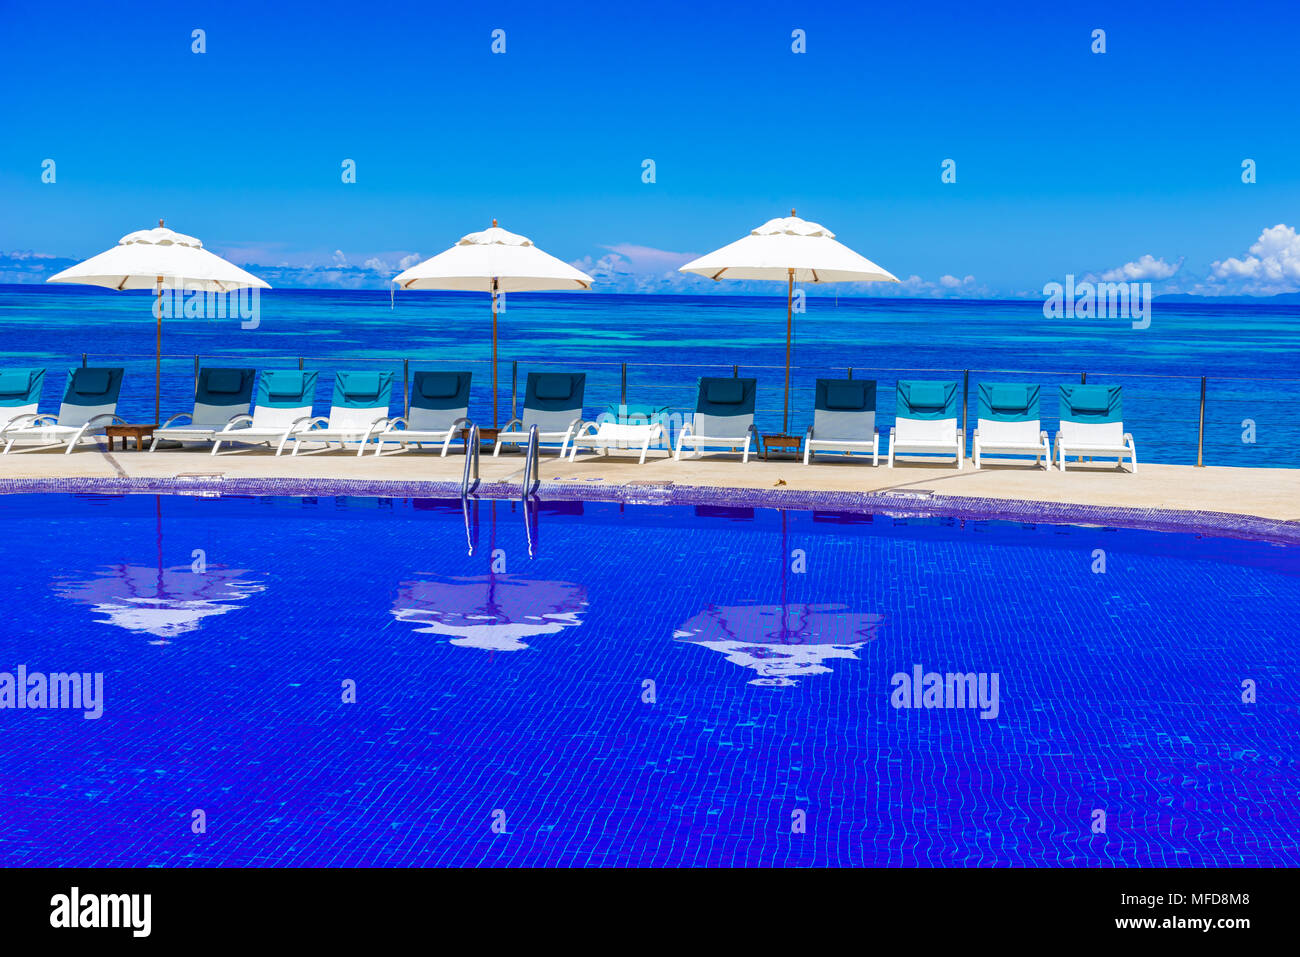 Sunbed on tropical beach - Stock Image